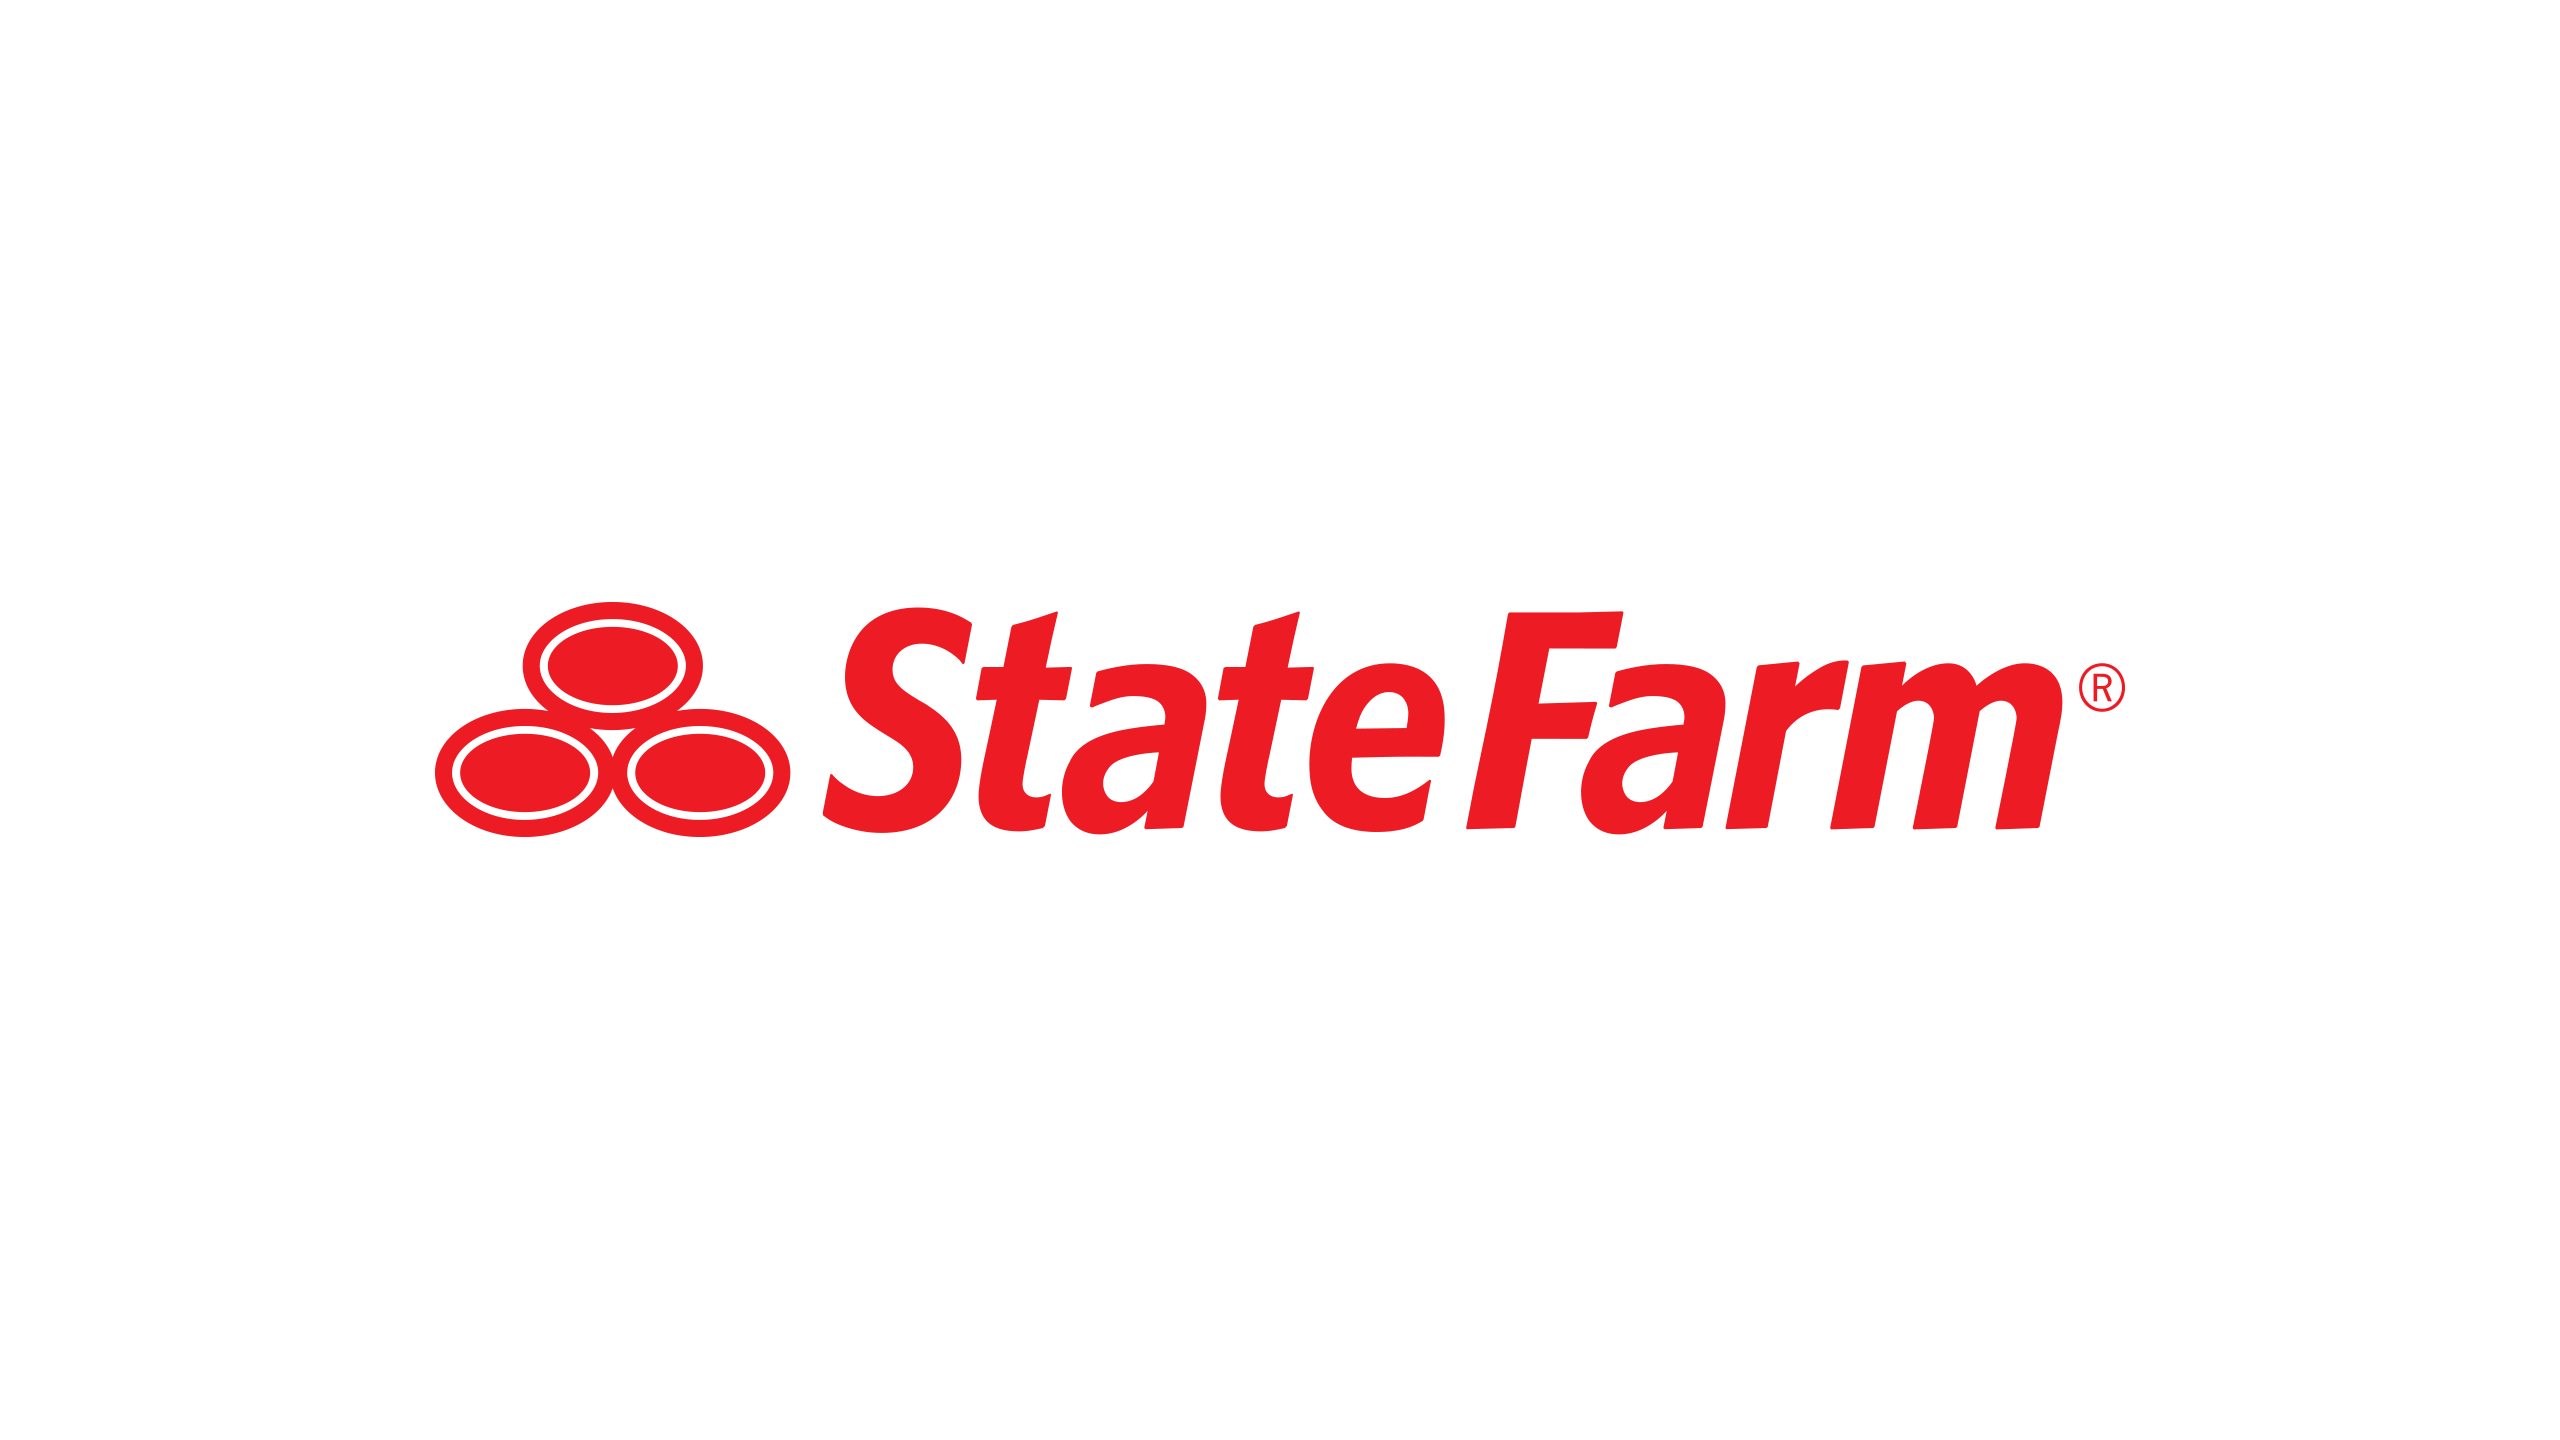 Click here to learn more about State Farm